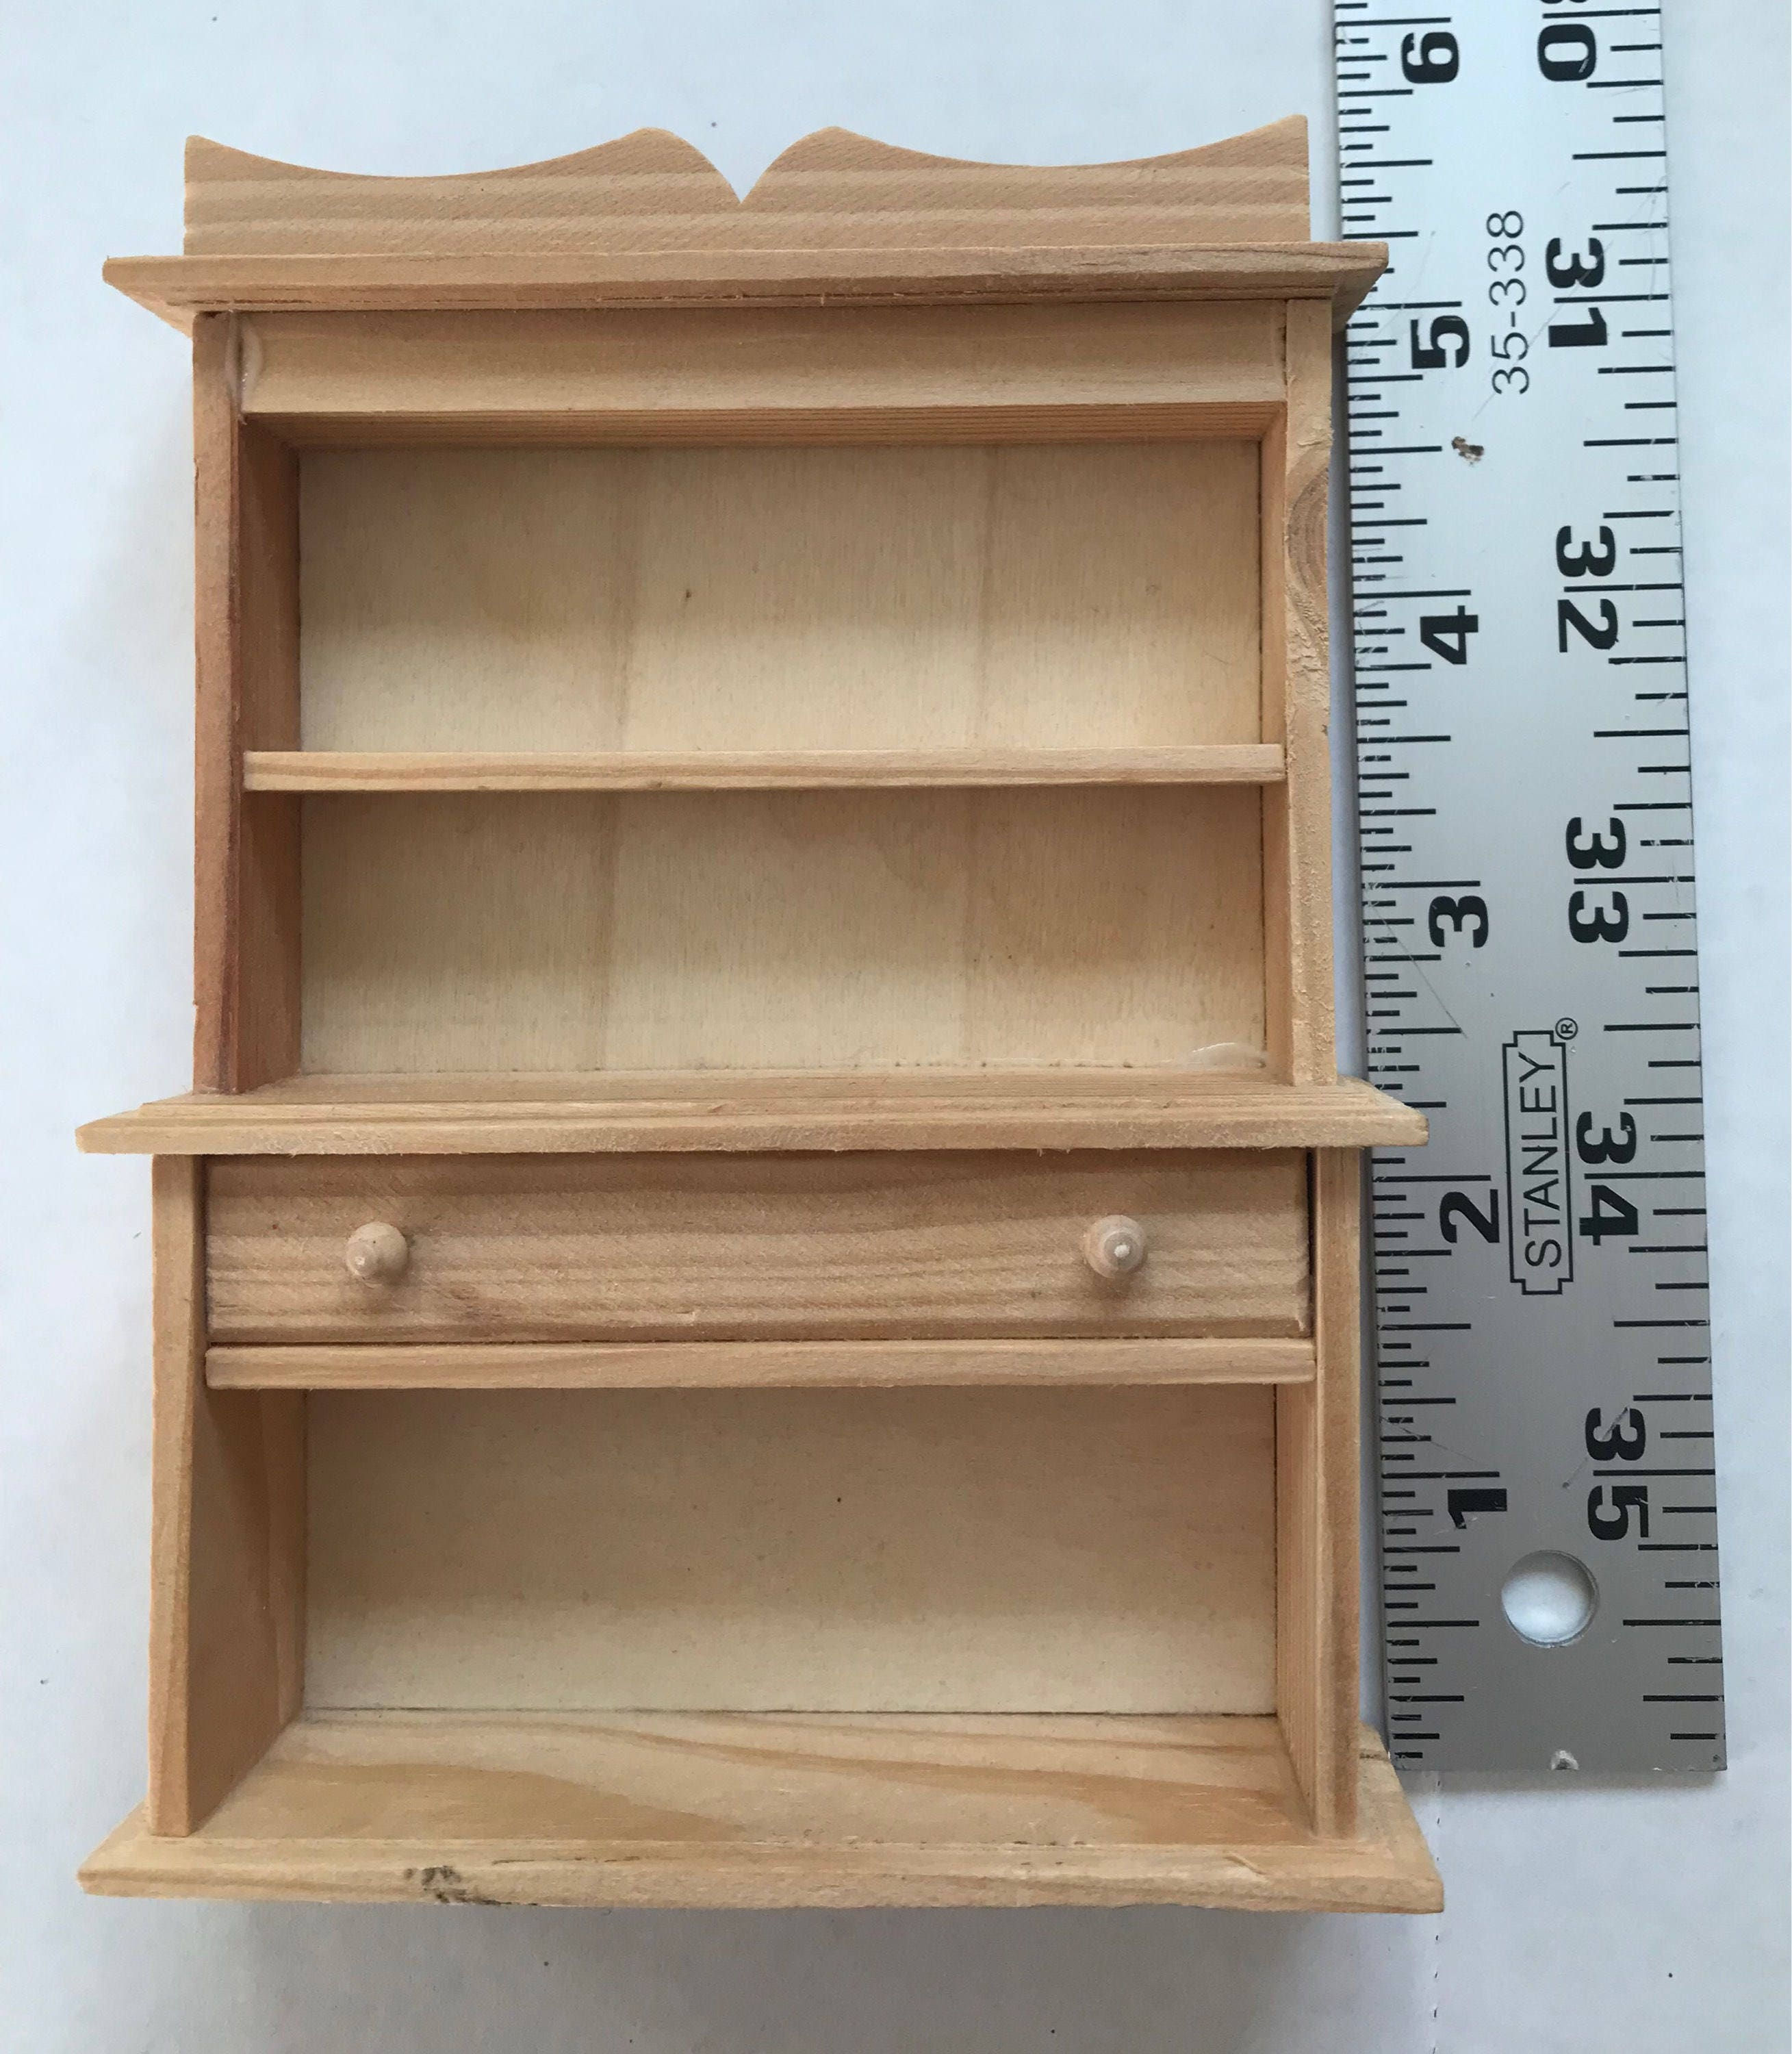 unfinished dollhouse furniture. + $4.00 Shipping Unfinished Dollhouse Furniture T